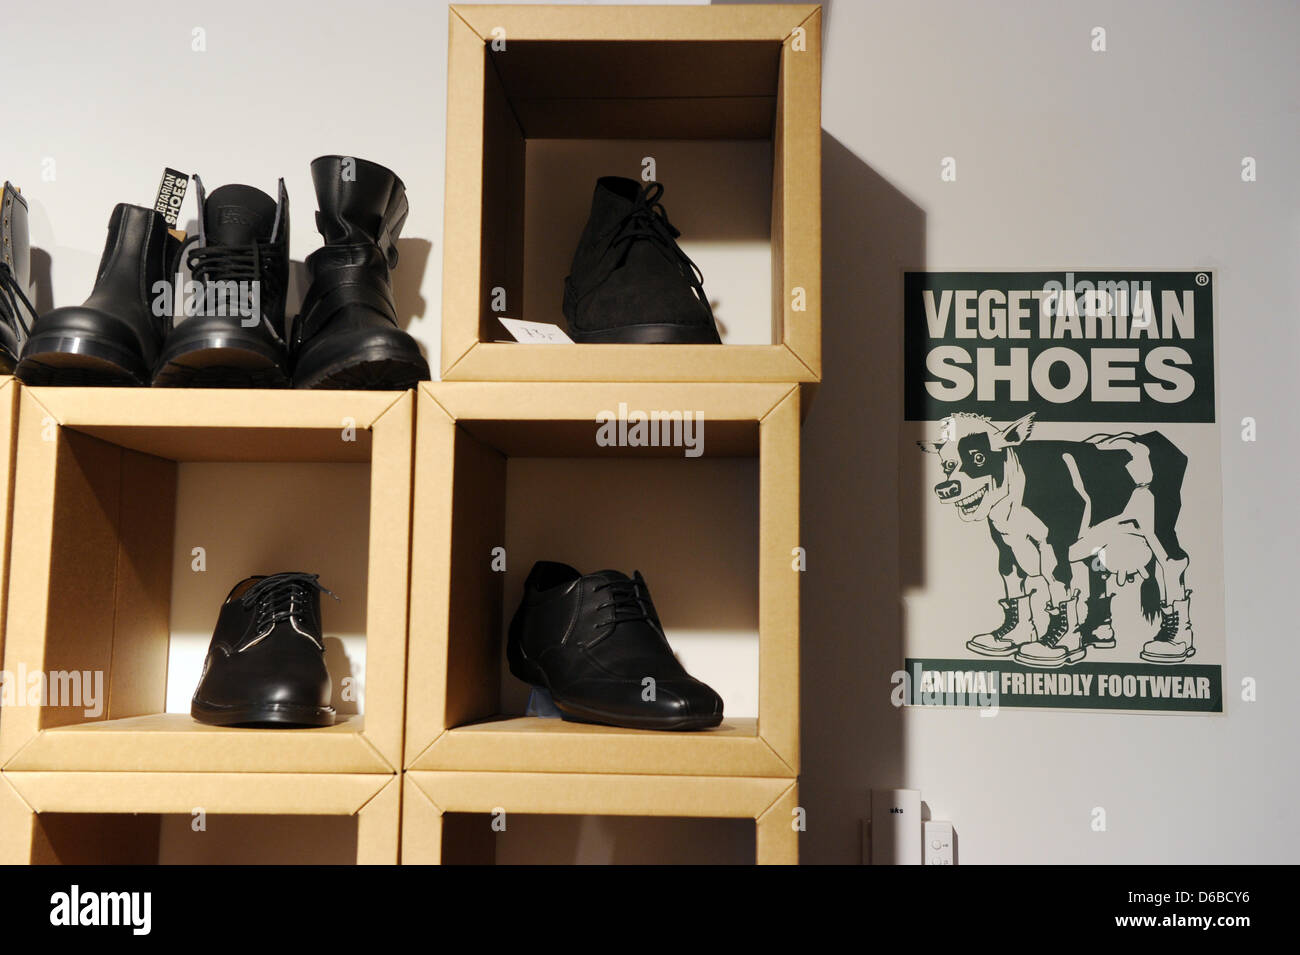 f09238392db3 Animal-friendly shoes are on offer at a vegan shoe store in Berlin